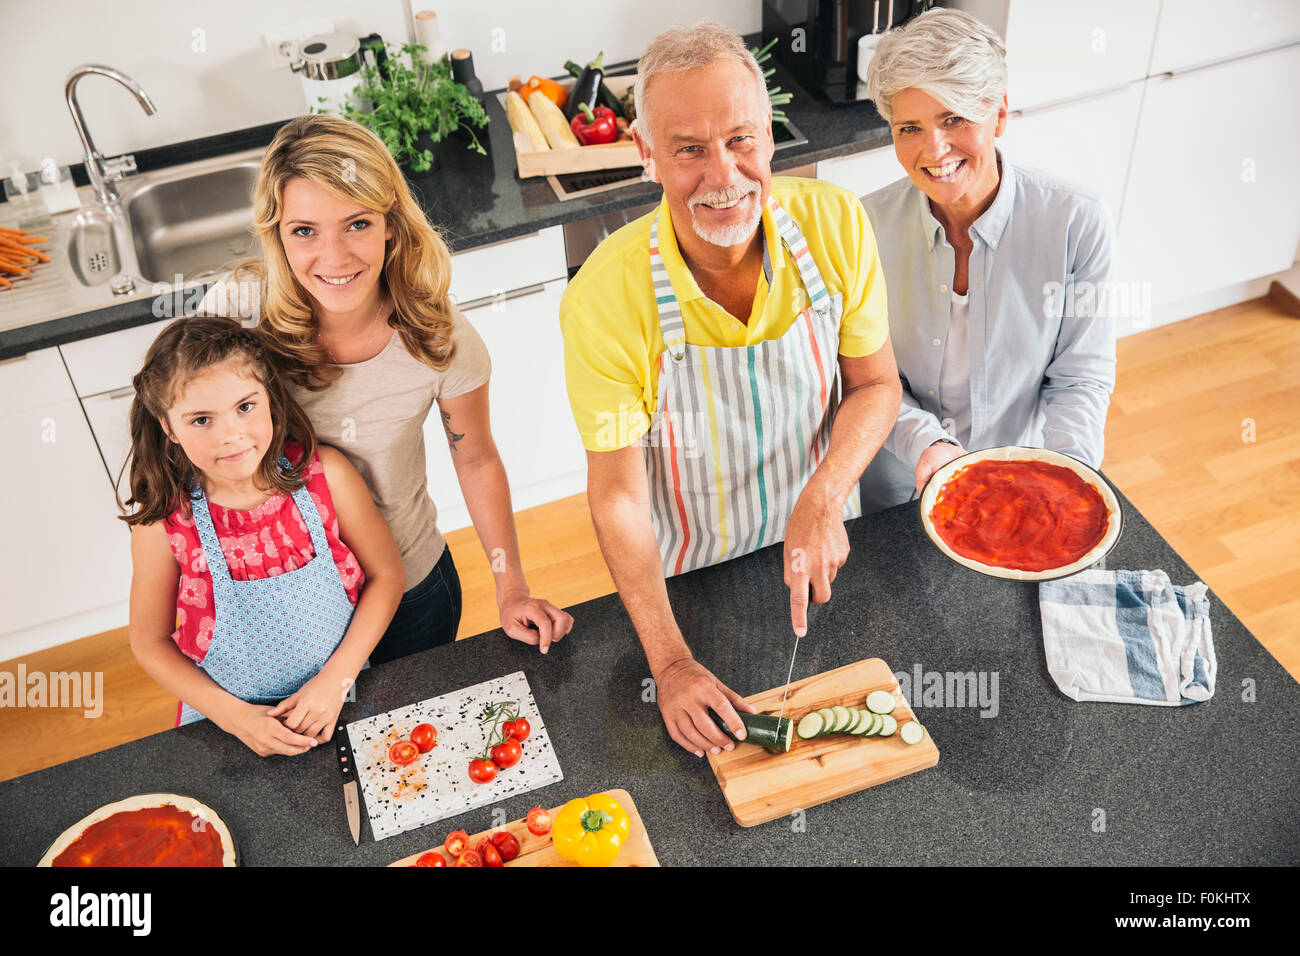 Group picture of three generations family in the kitchen - Stock Image